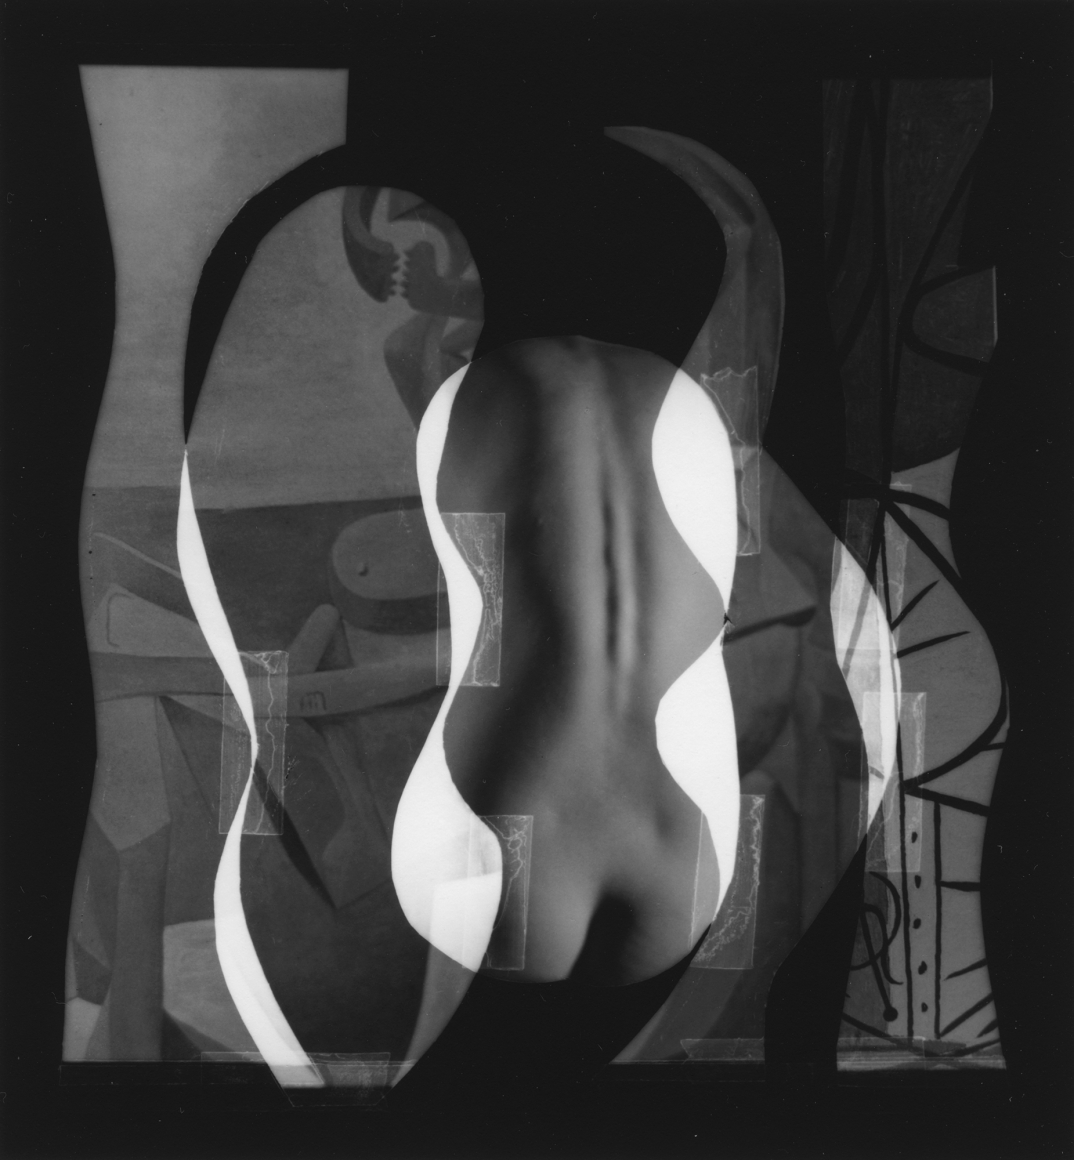 Nude Composition #12 1996 gelatin silver print 4 1/4 x 4 1/4 inches